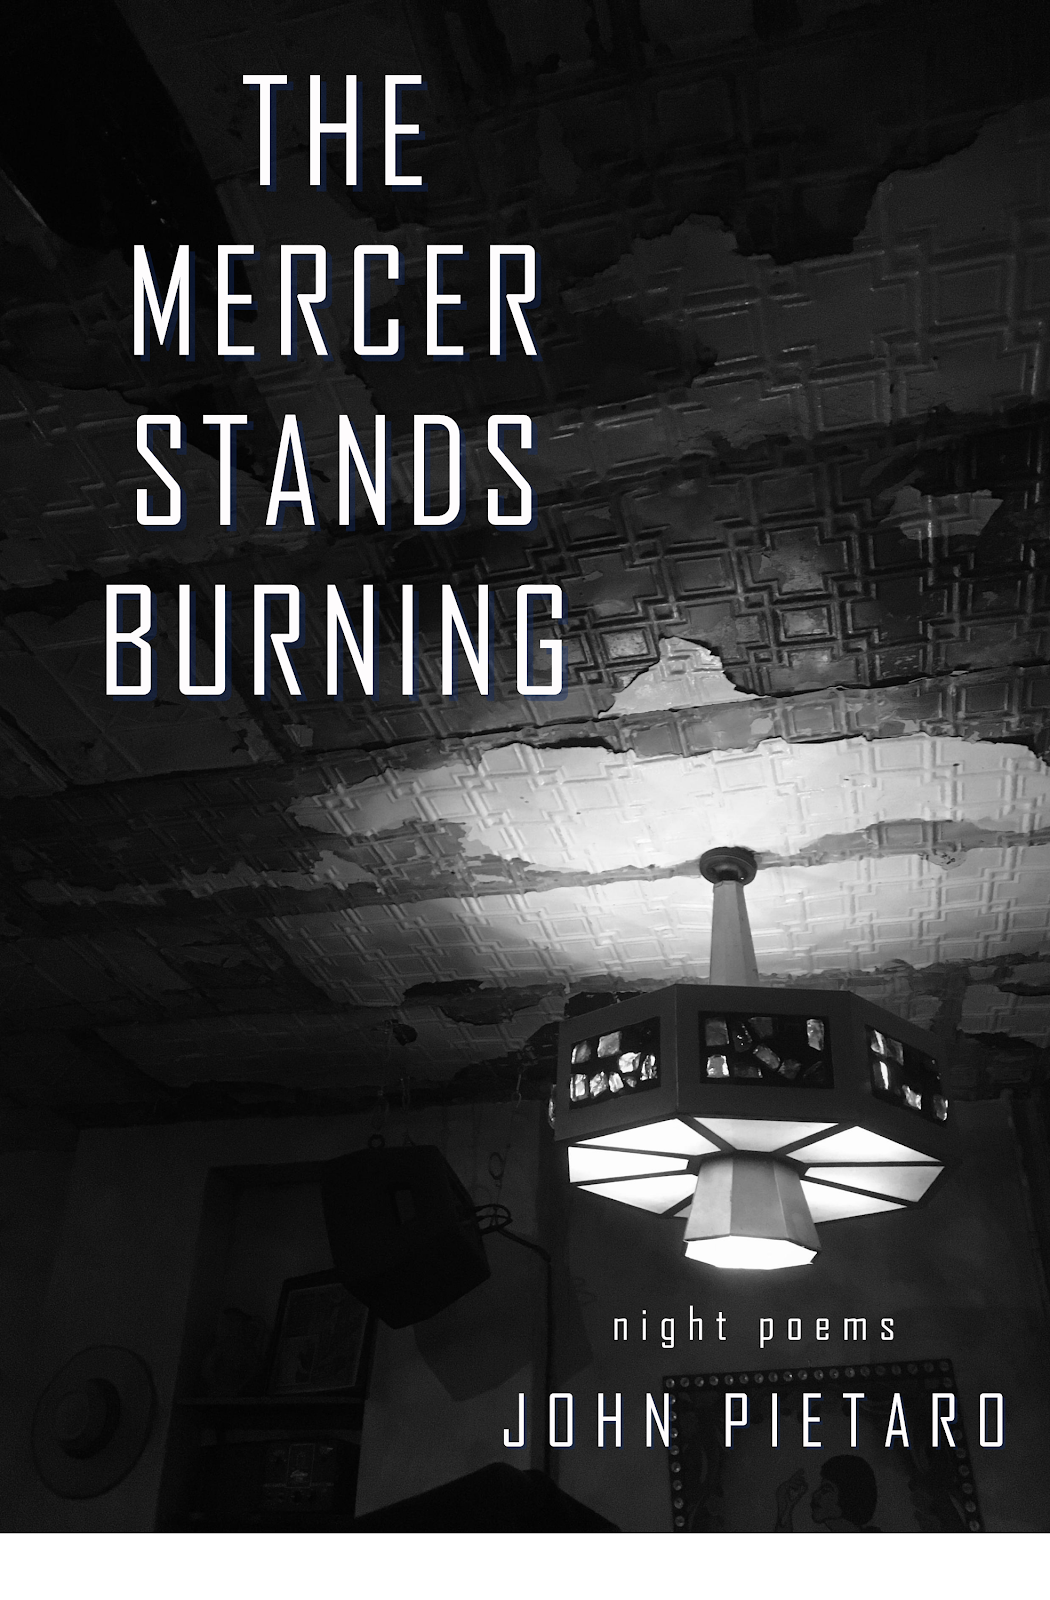 The Mercer Stands Burning: Night Poems by John Pietaro